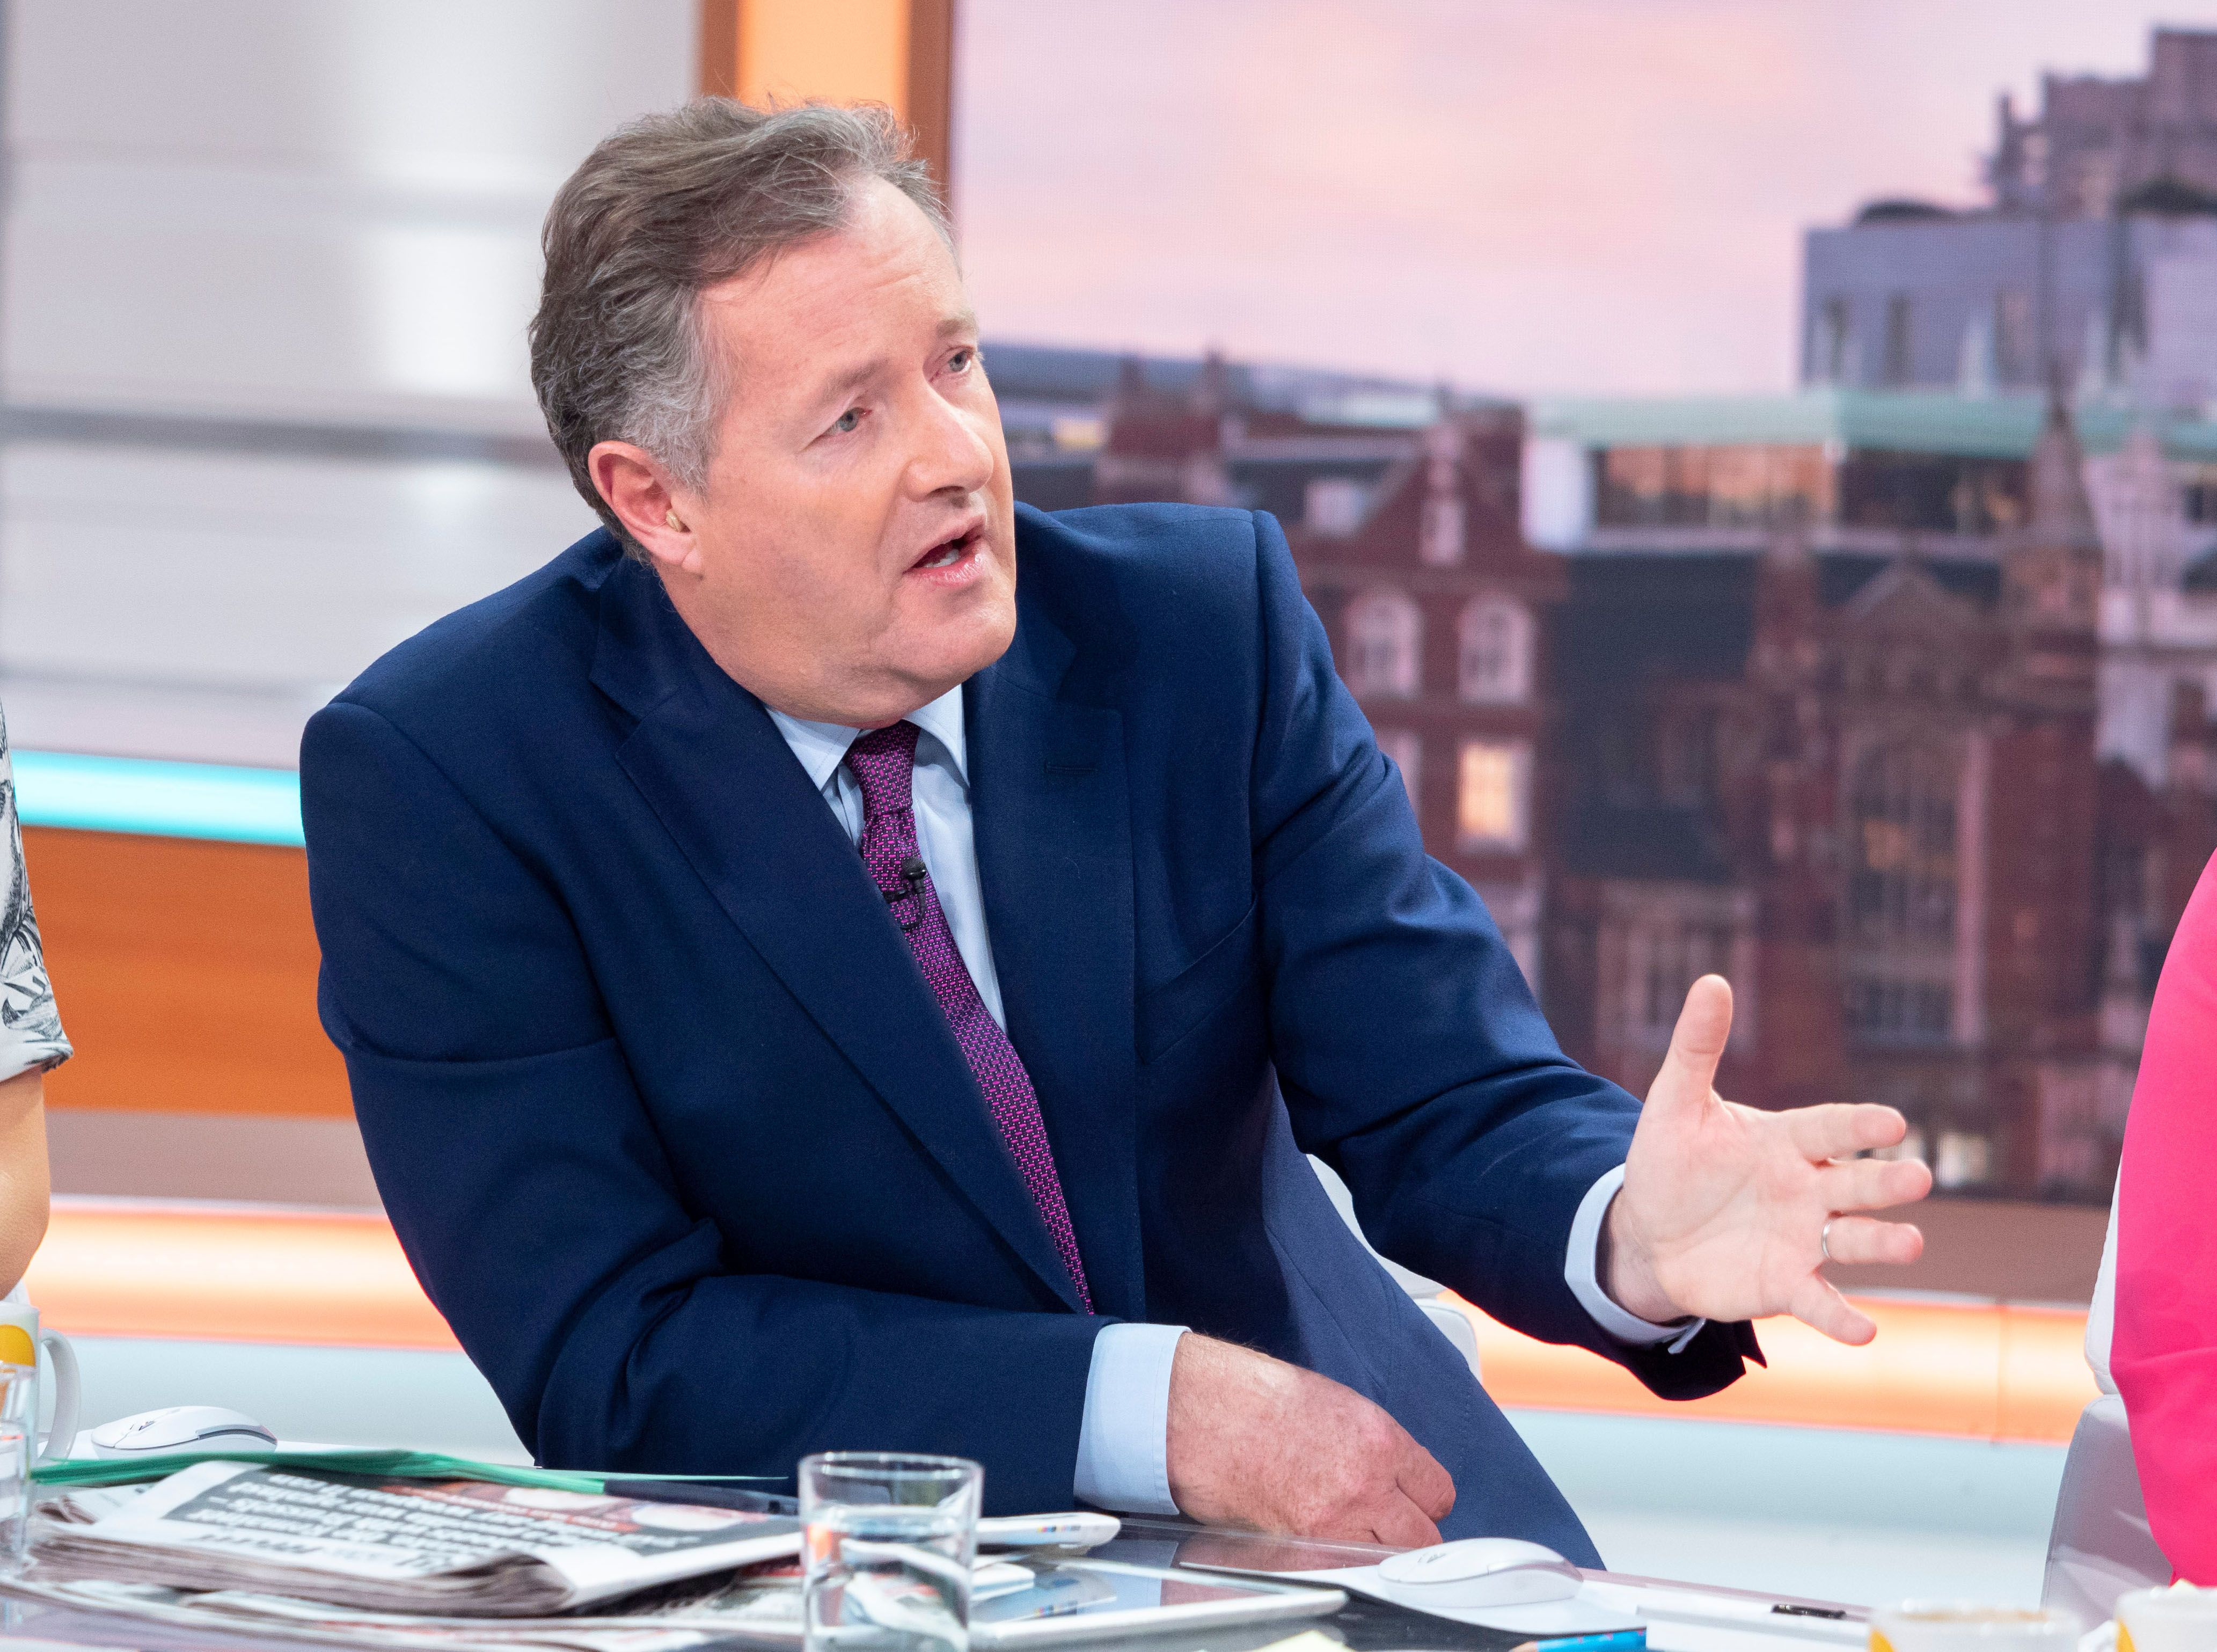 Good Morning Britain's Piers Morgan confirms he's taking break from show